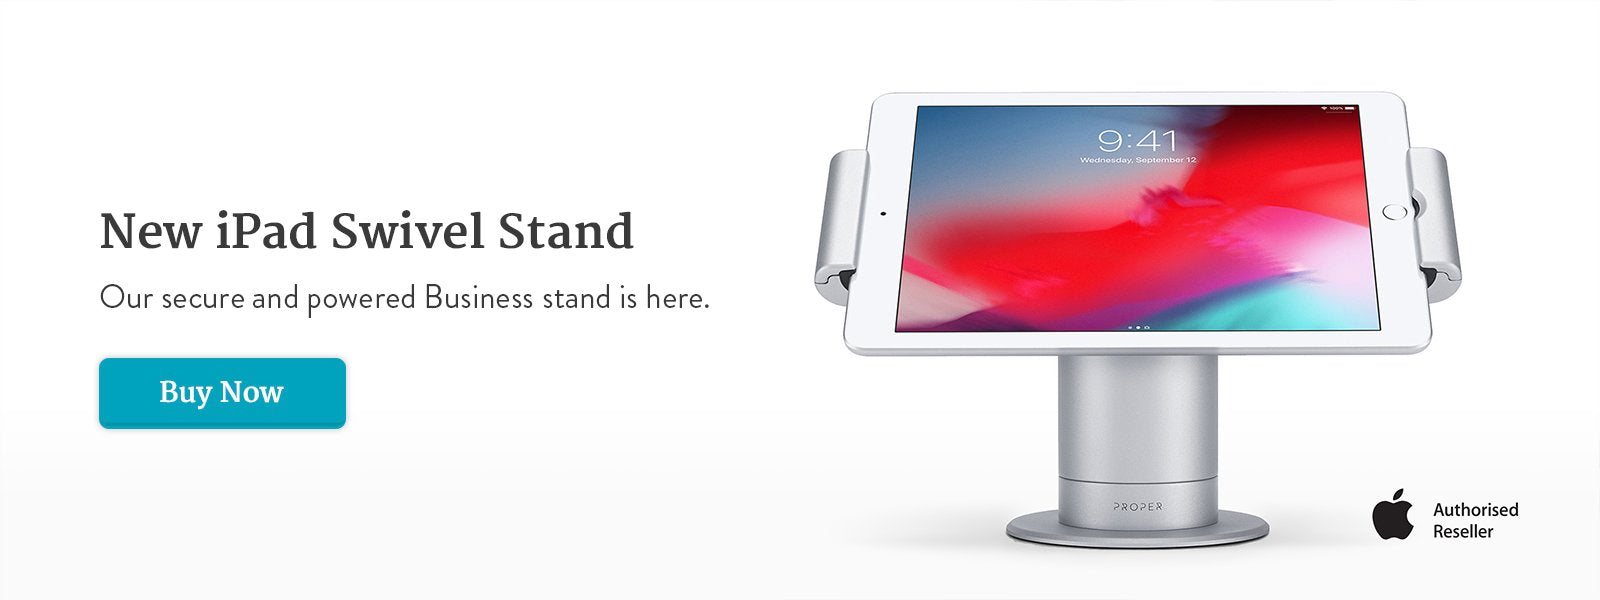 Introducing the new iPad Swivel Stand for Business